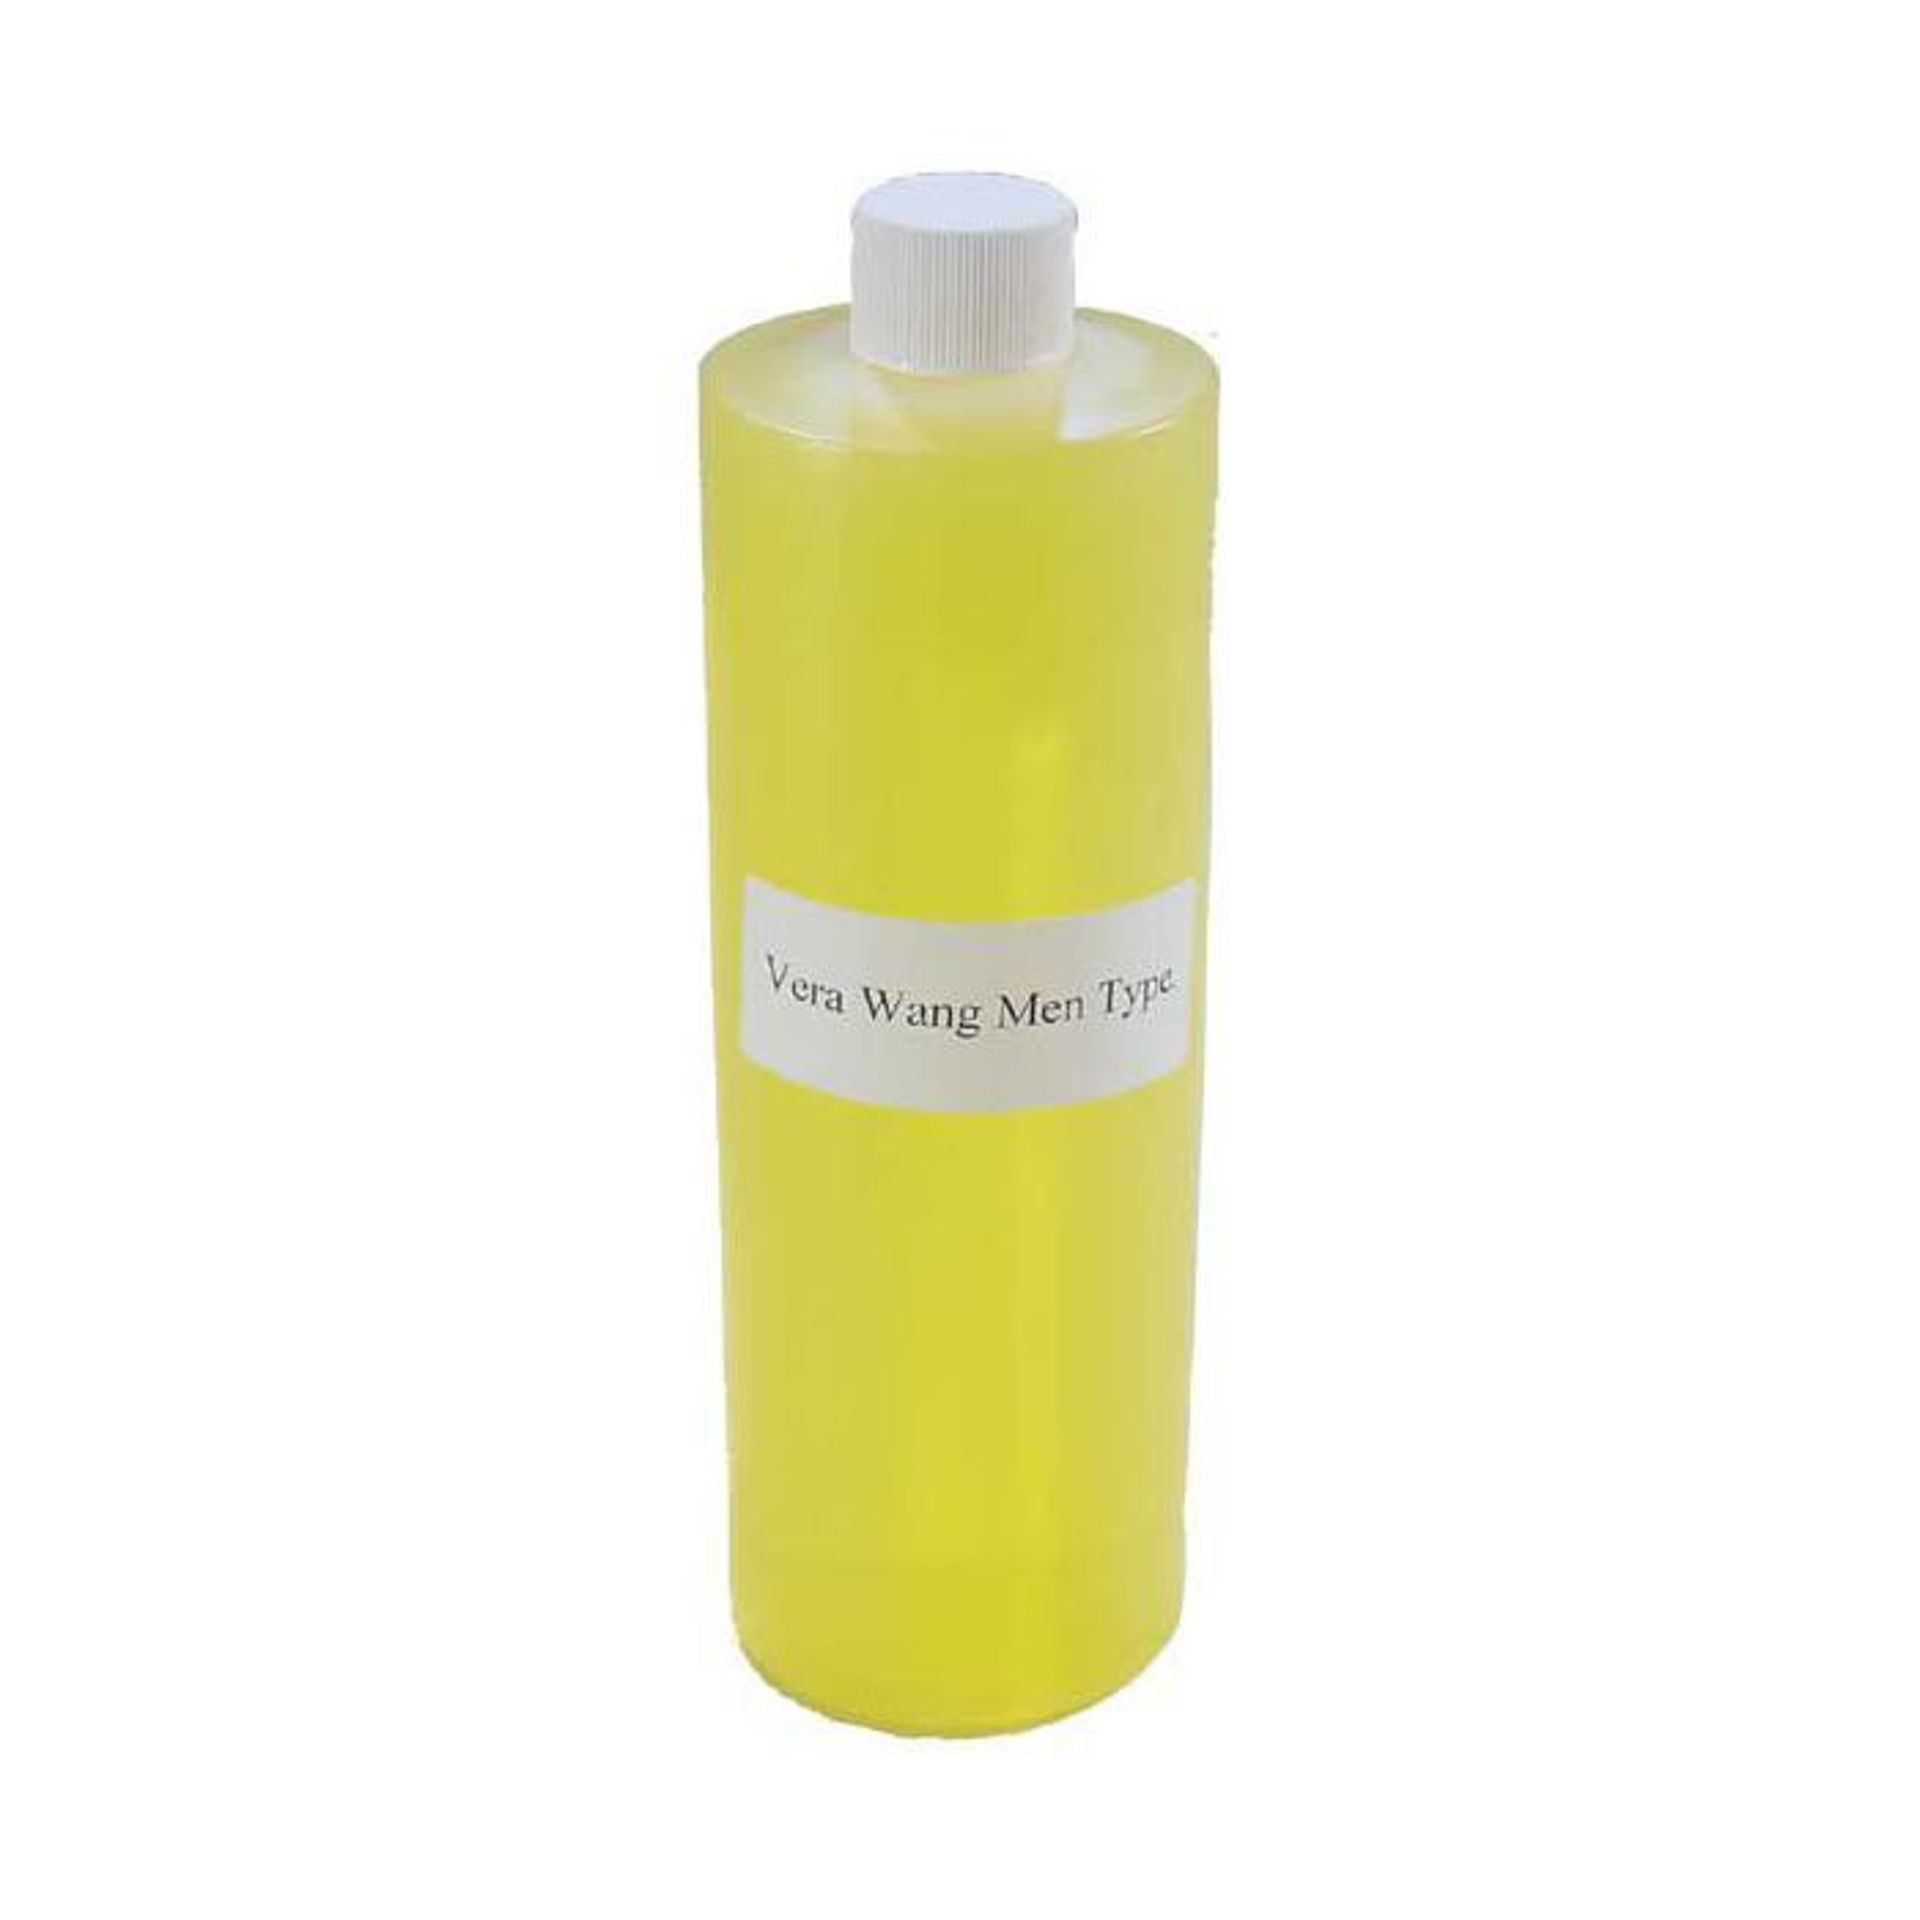 Picture of 1 Lb Vera Wang (M) Type Fragrance Oil